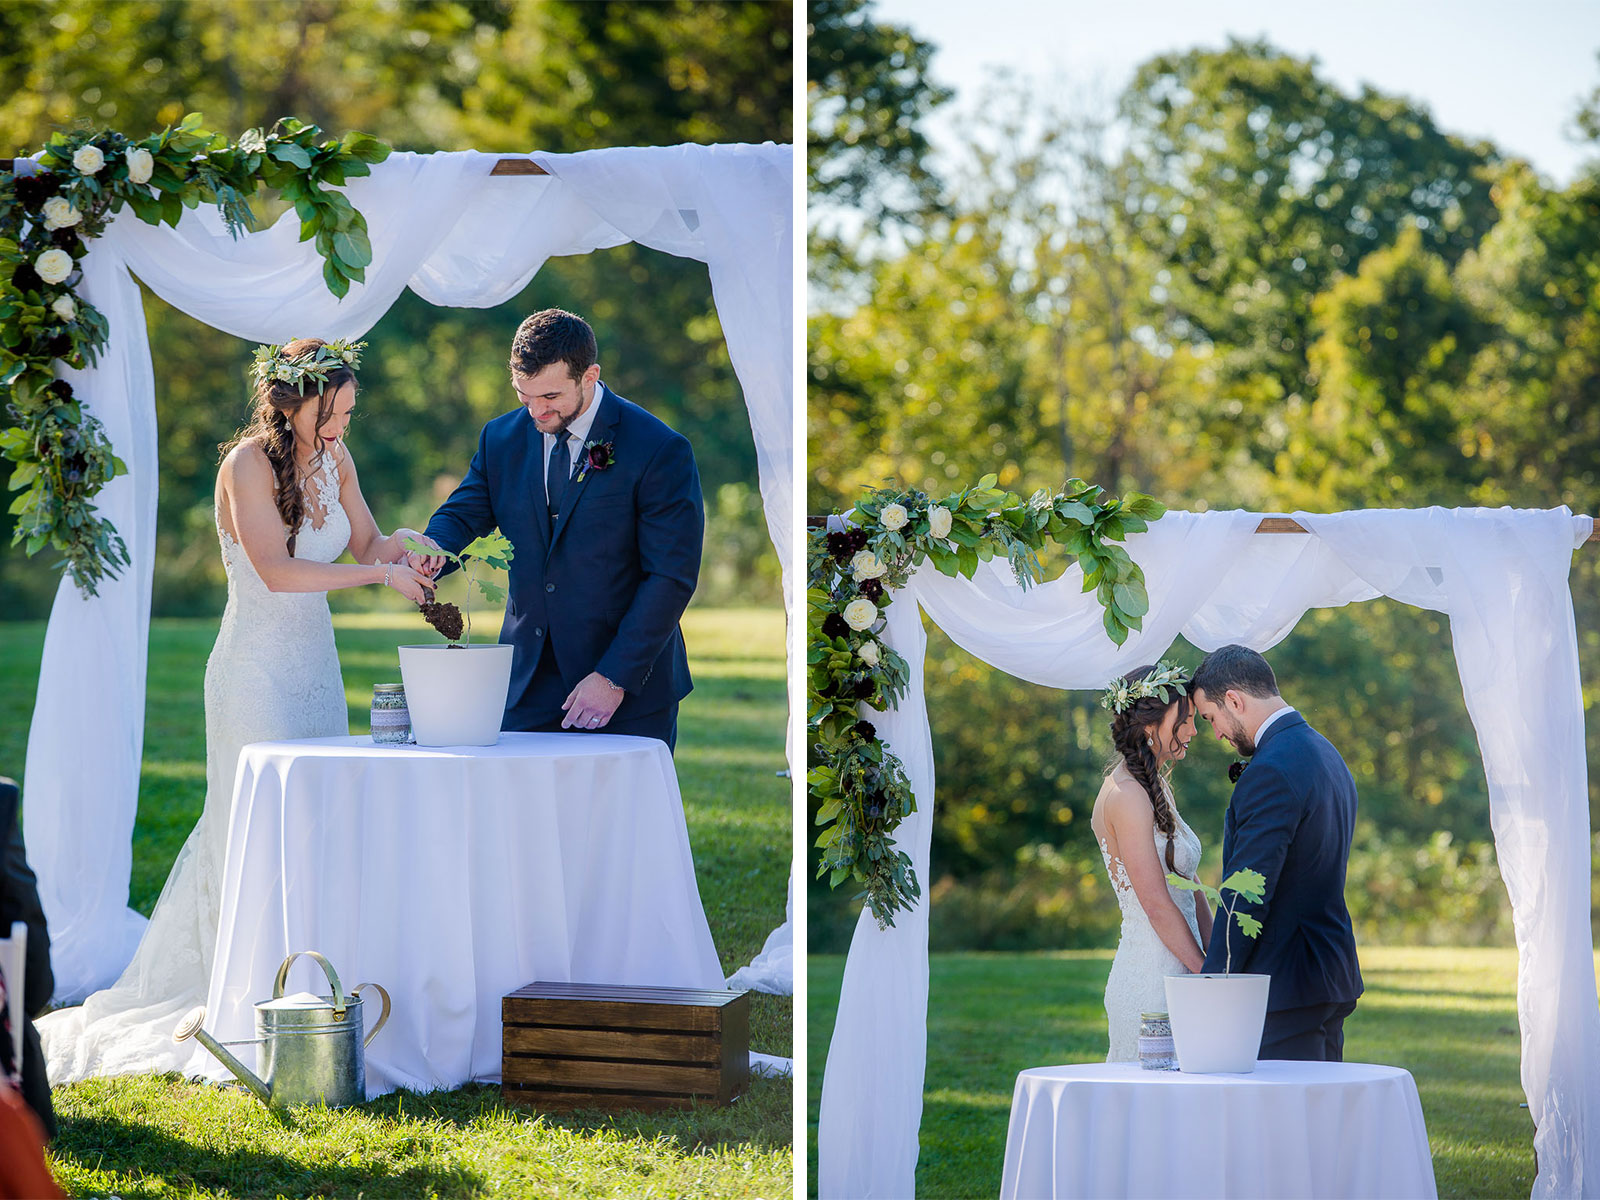 Eric_and_Christy_Photography_Blog_Stephanie_Nick_Wedding-73-74